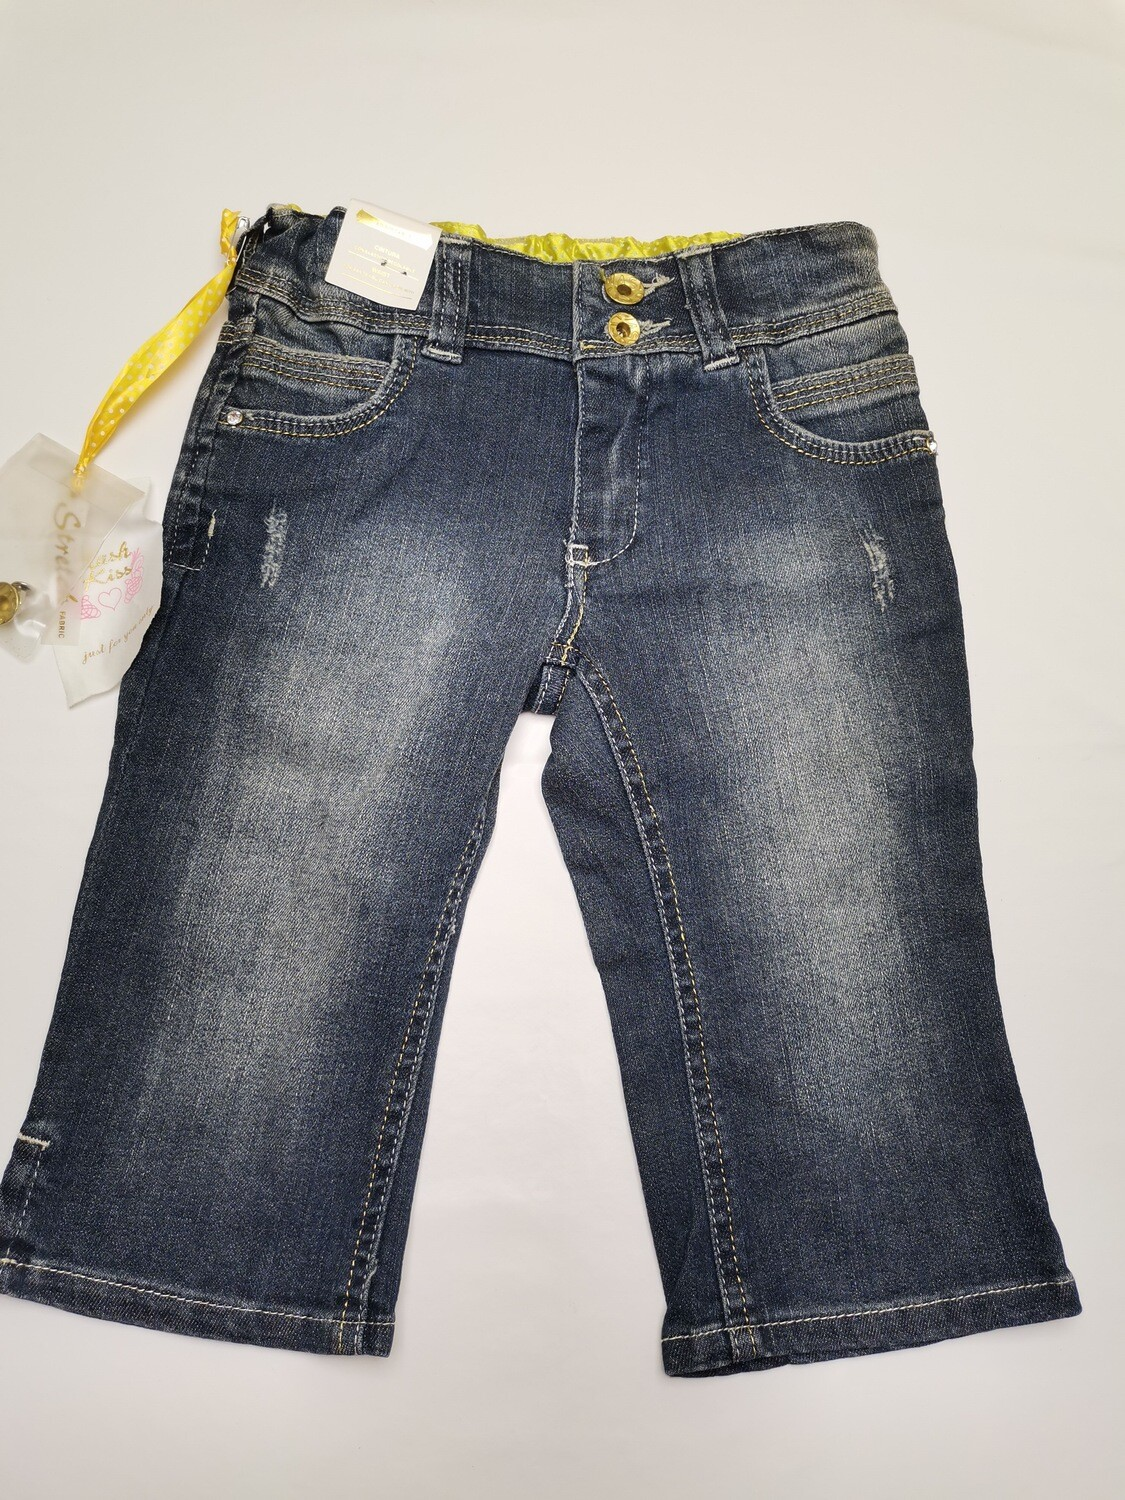 CALZONCINI MASH JEANS TG 5A